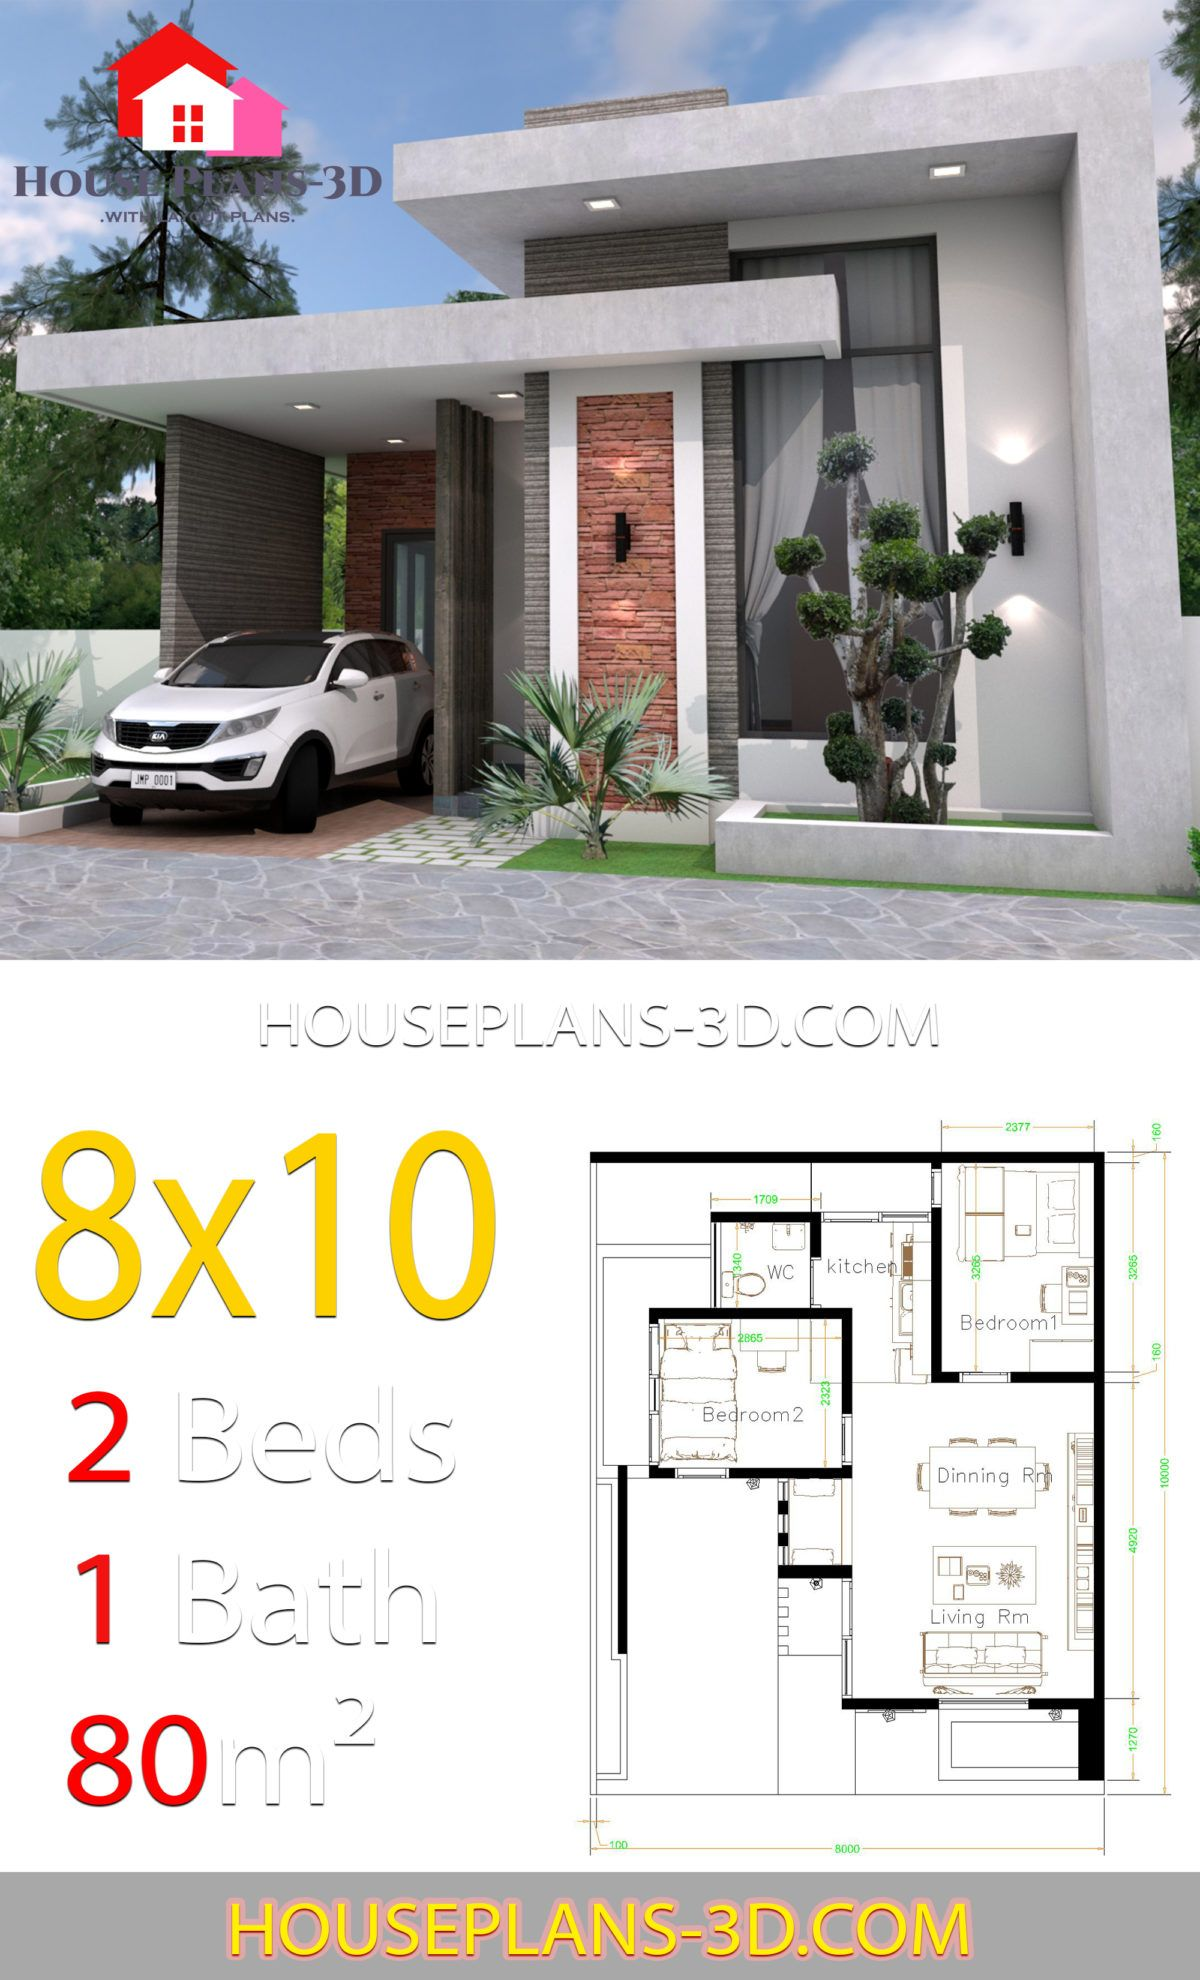 House Design 8x10 With 2 Bedrooms Terrace Roof House Plans 3d In 2020 House Outside Design House Construction Plan House Plans